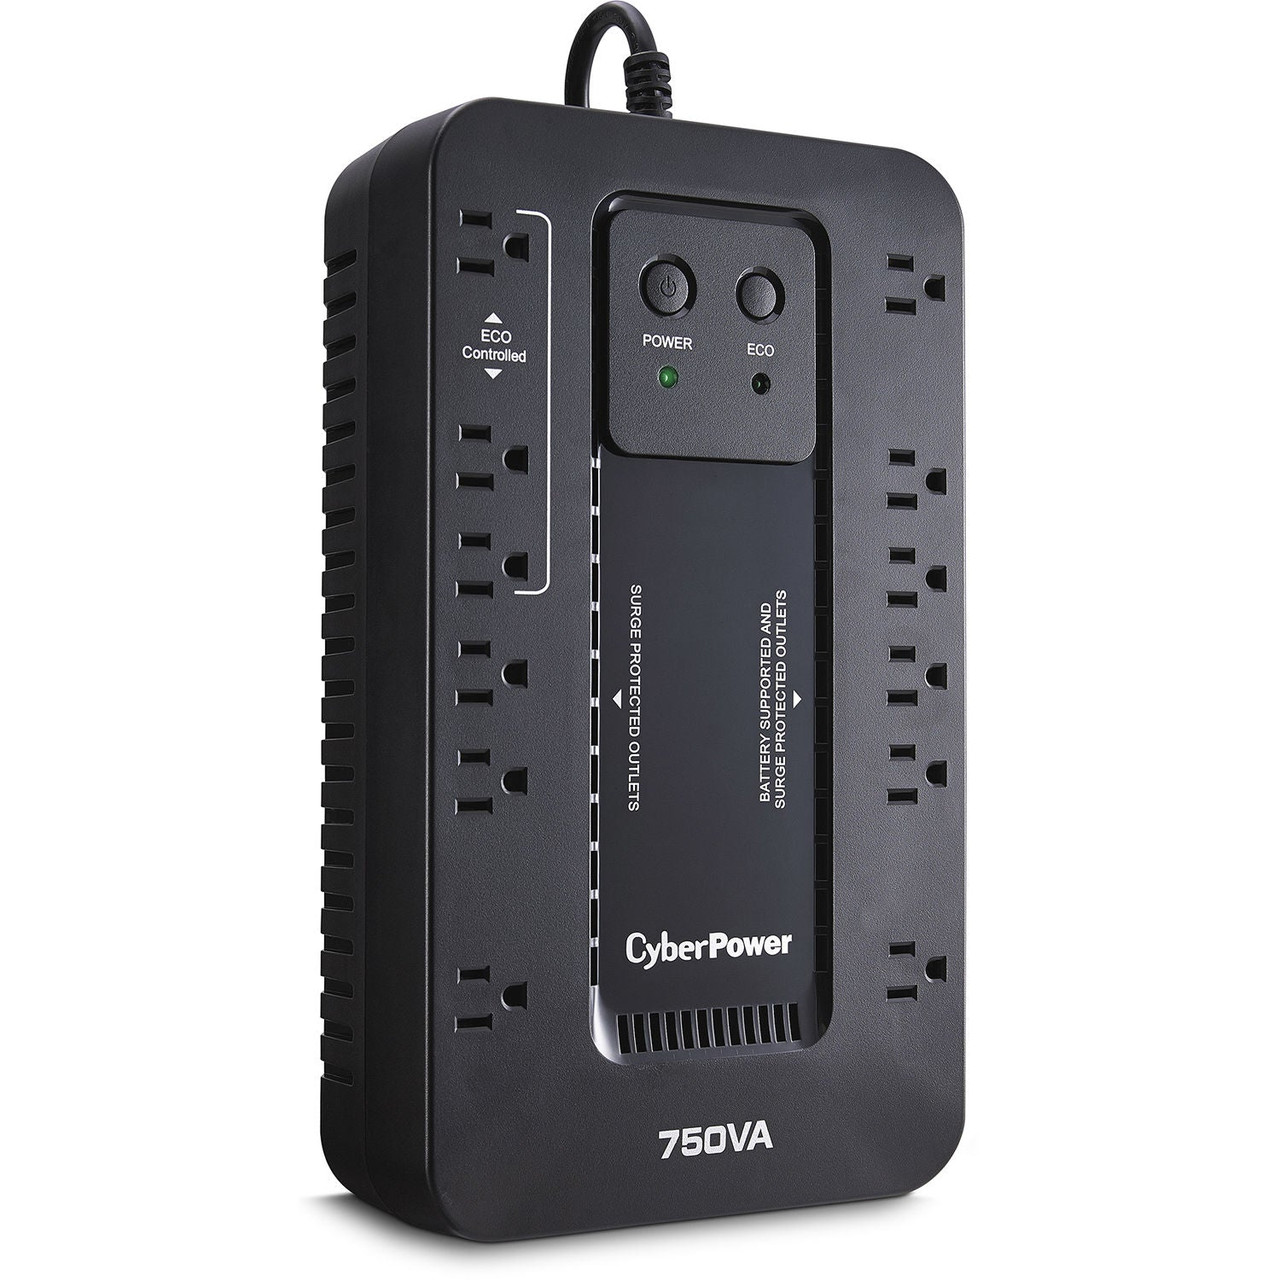 CyberPower EC750G-R 750VA/450W 12 Outlets Ecologic Series Uninterruptible Power Supply - Certified Refurbished